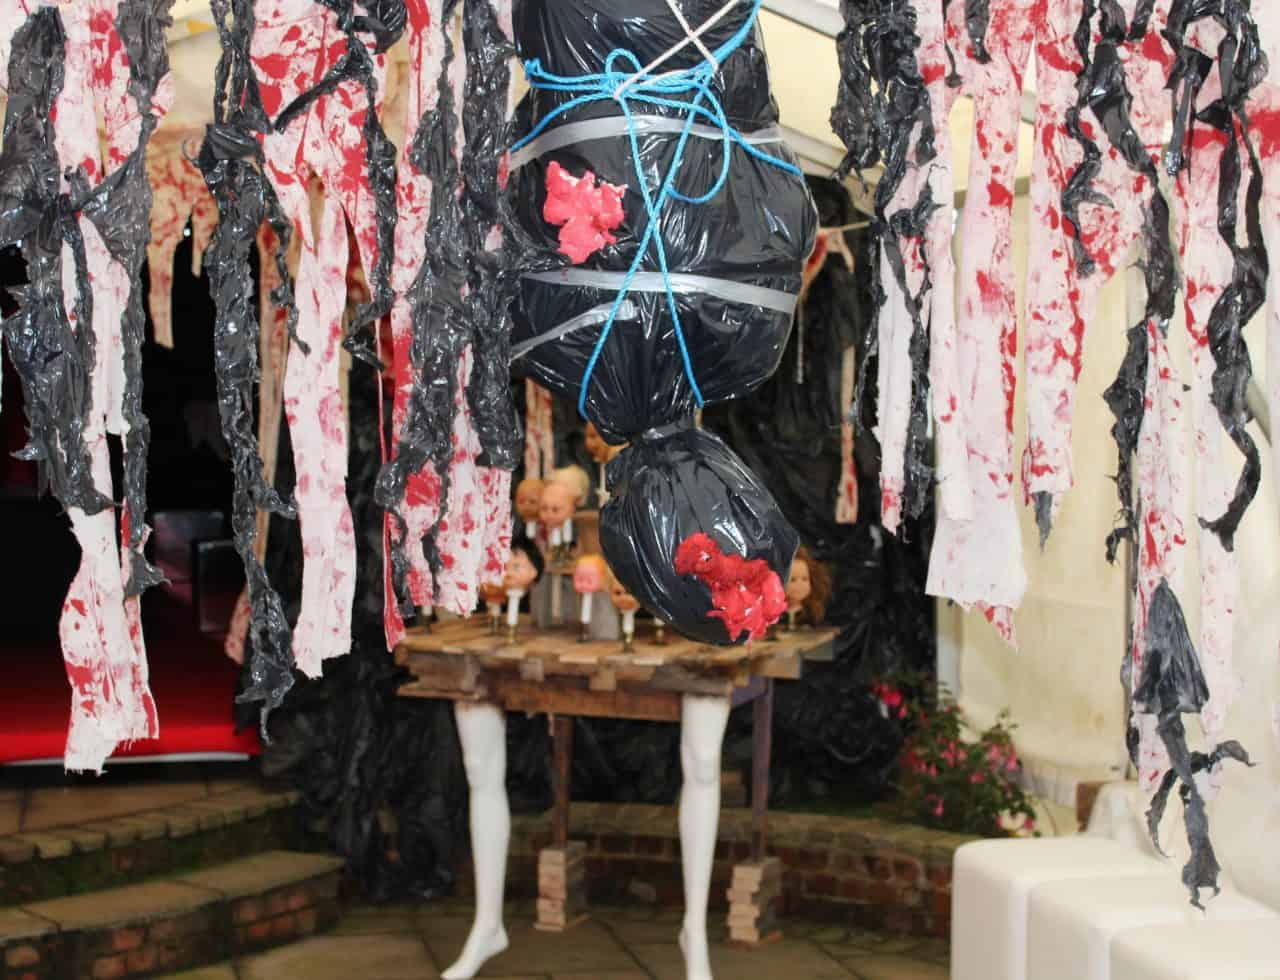 Bespoke Halloween Props we created for our Halloween venue dressing service.